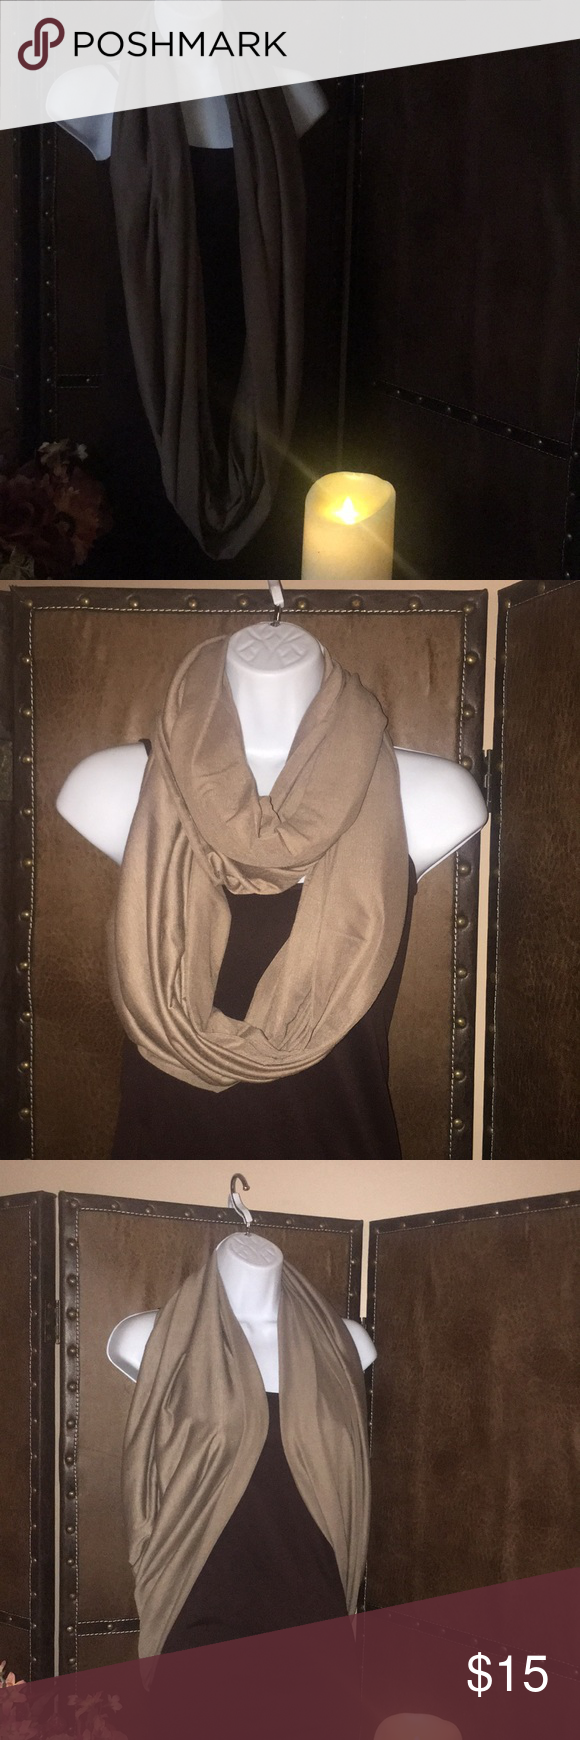 Soft brown t-shirt jersey material infinity scarf Infinity scarf, soft brown Jersey T-shirt material, can wear an infinite number of ways! Mi Amore Accessories Scarves & Wraps